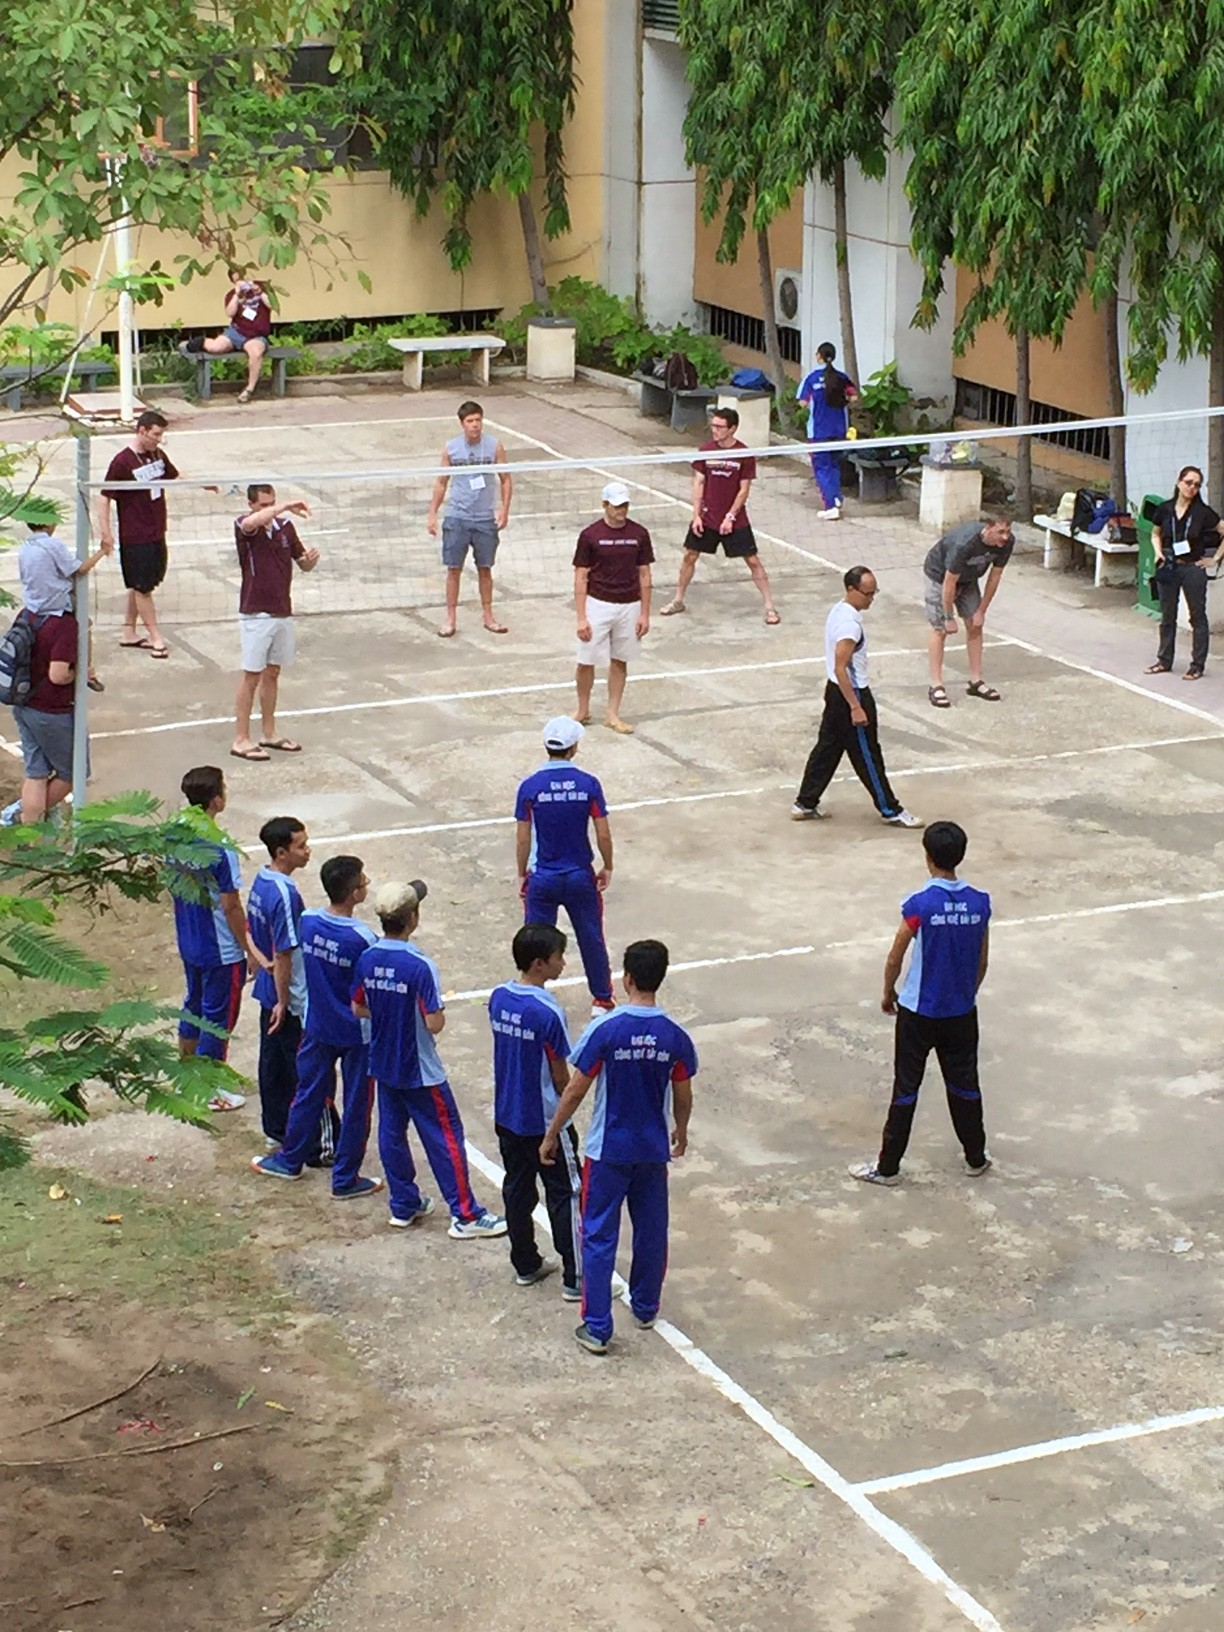 Intercollegiate volleyball